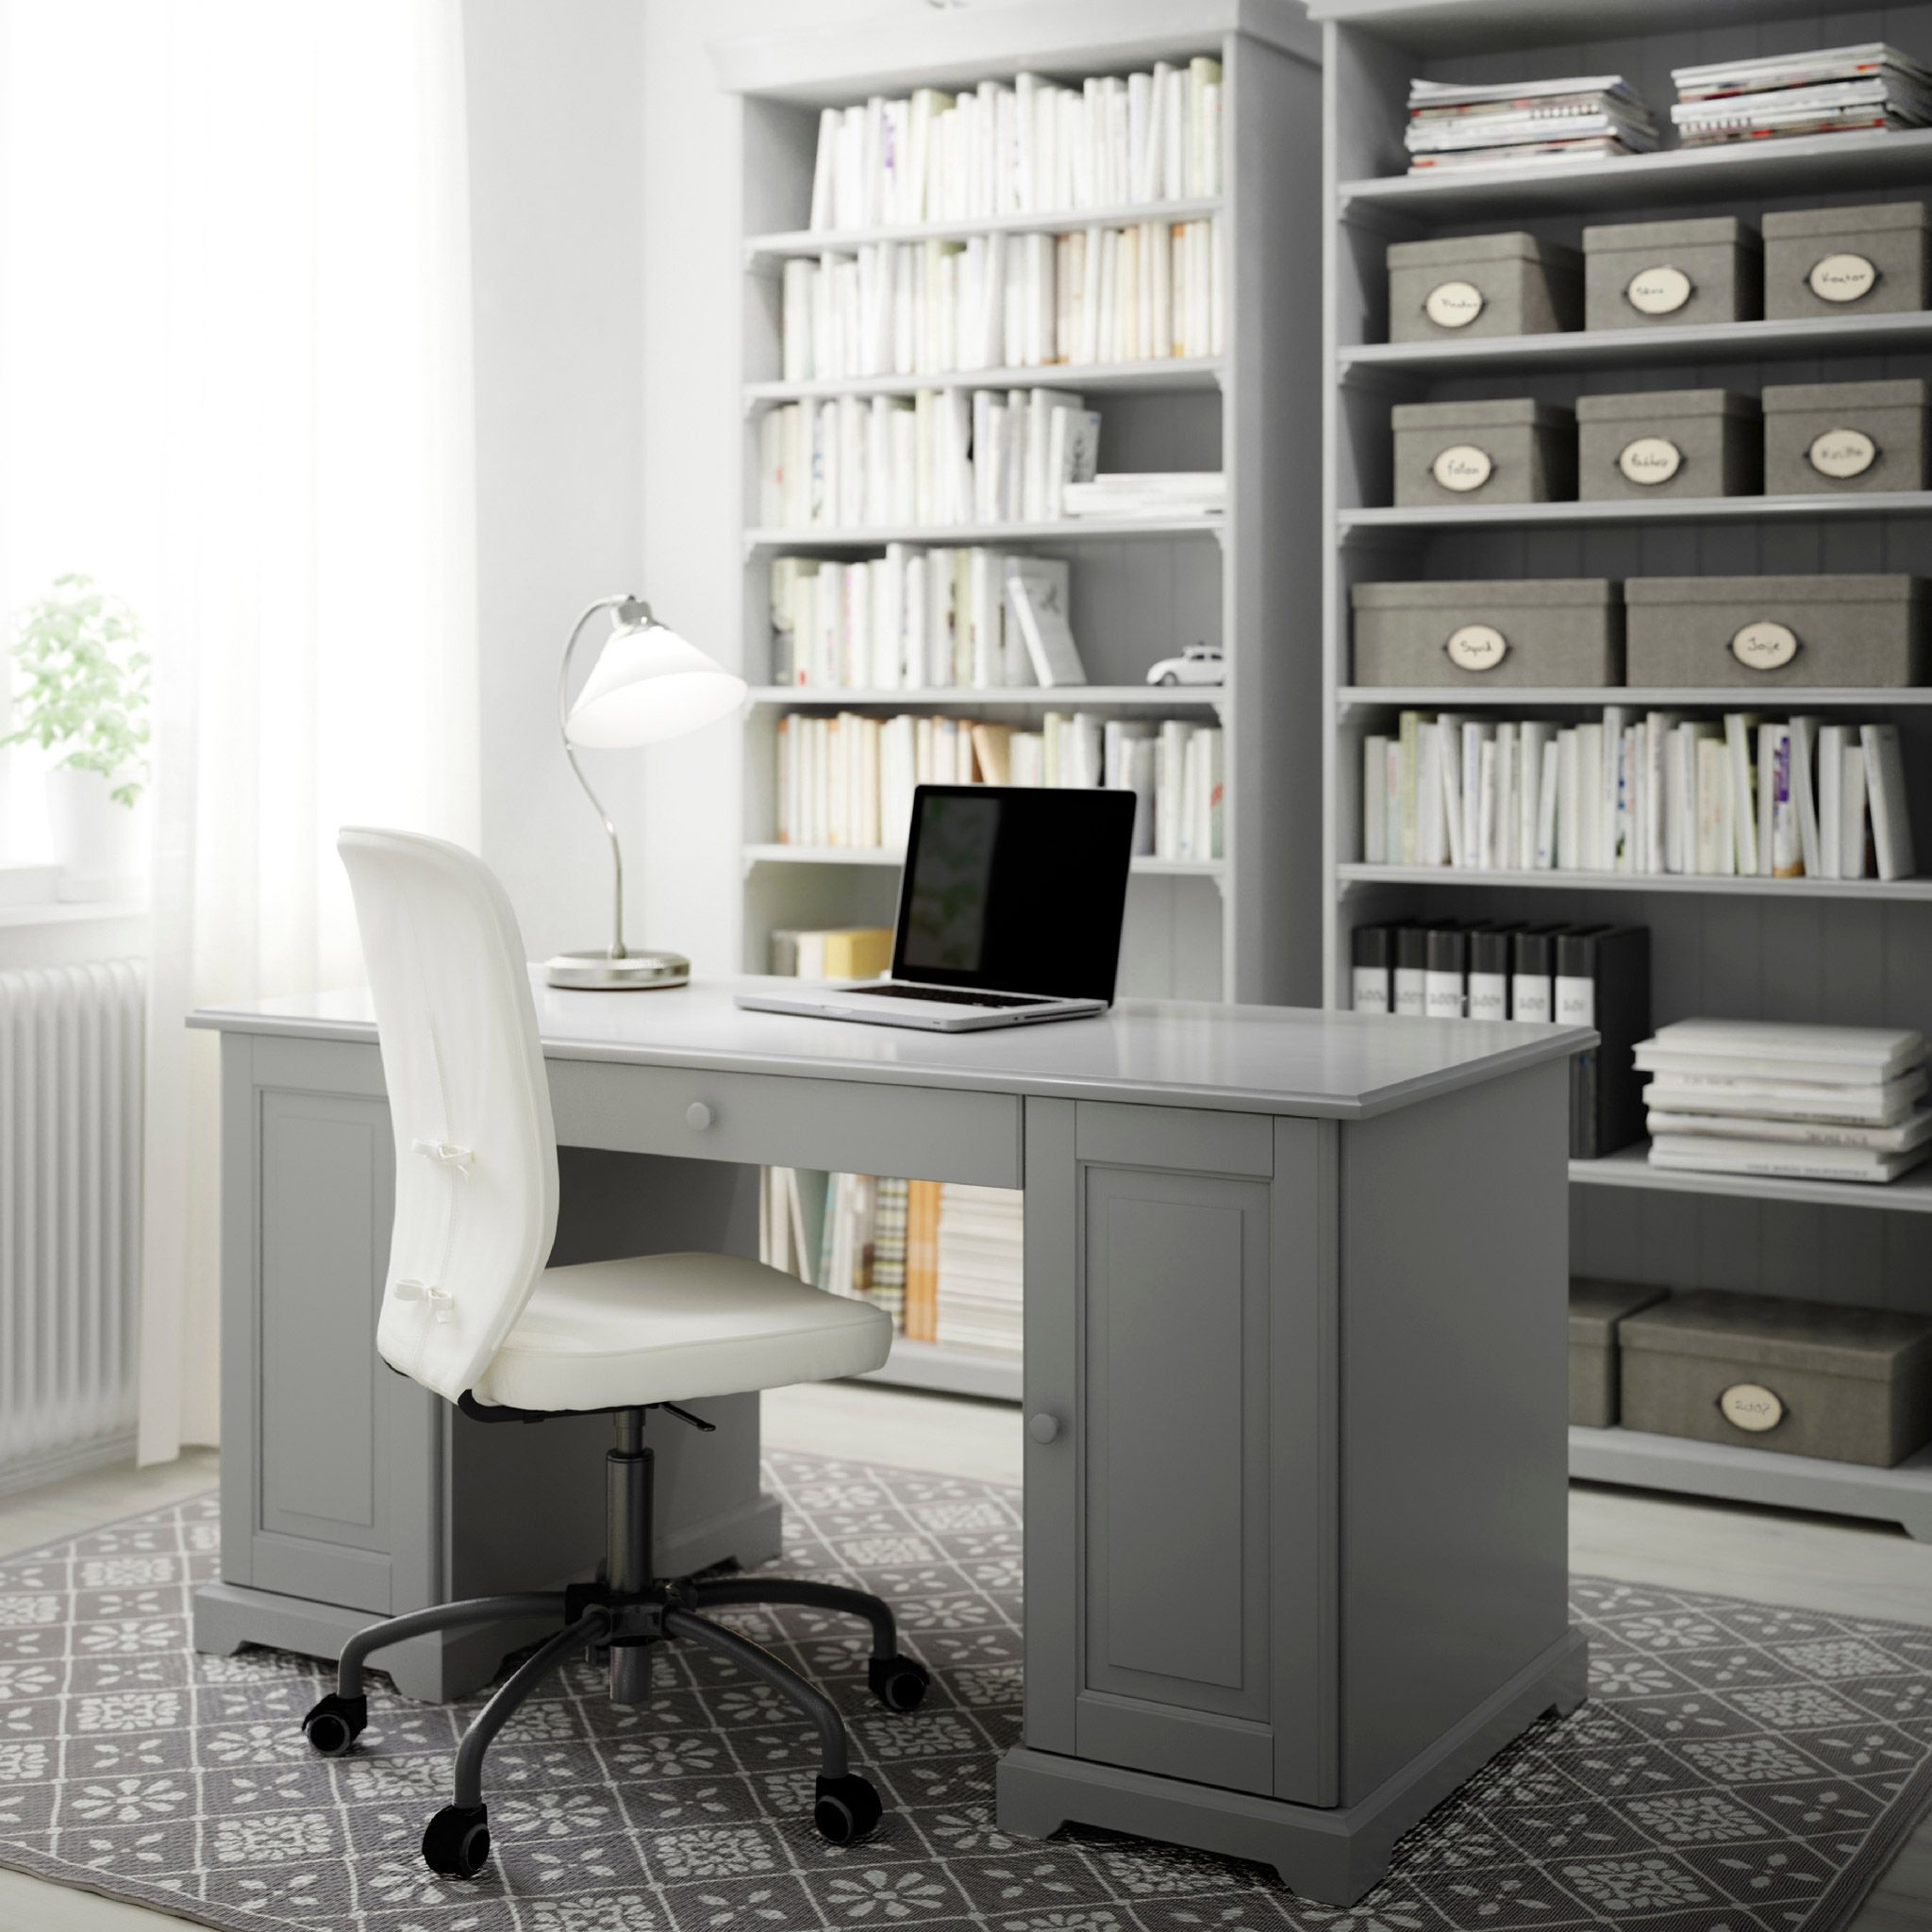 99 Modular Desk Systems Home Office